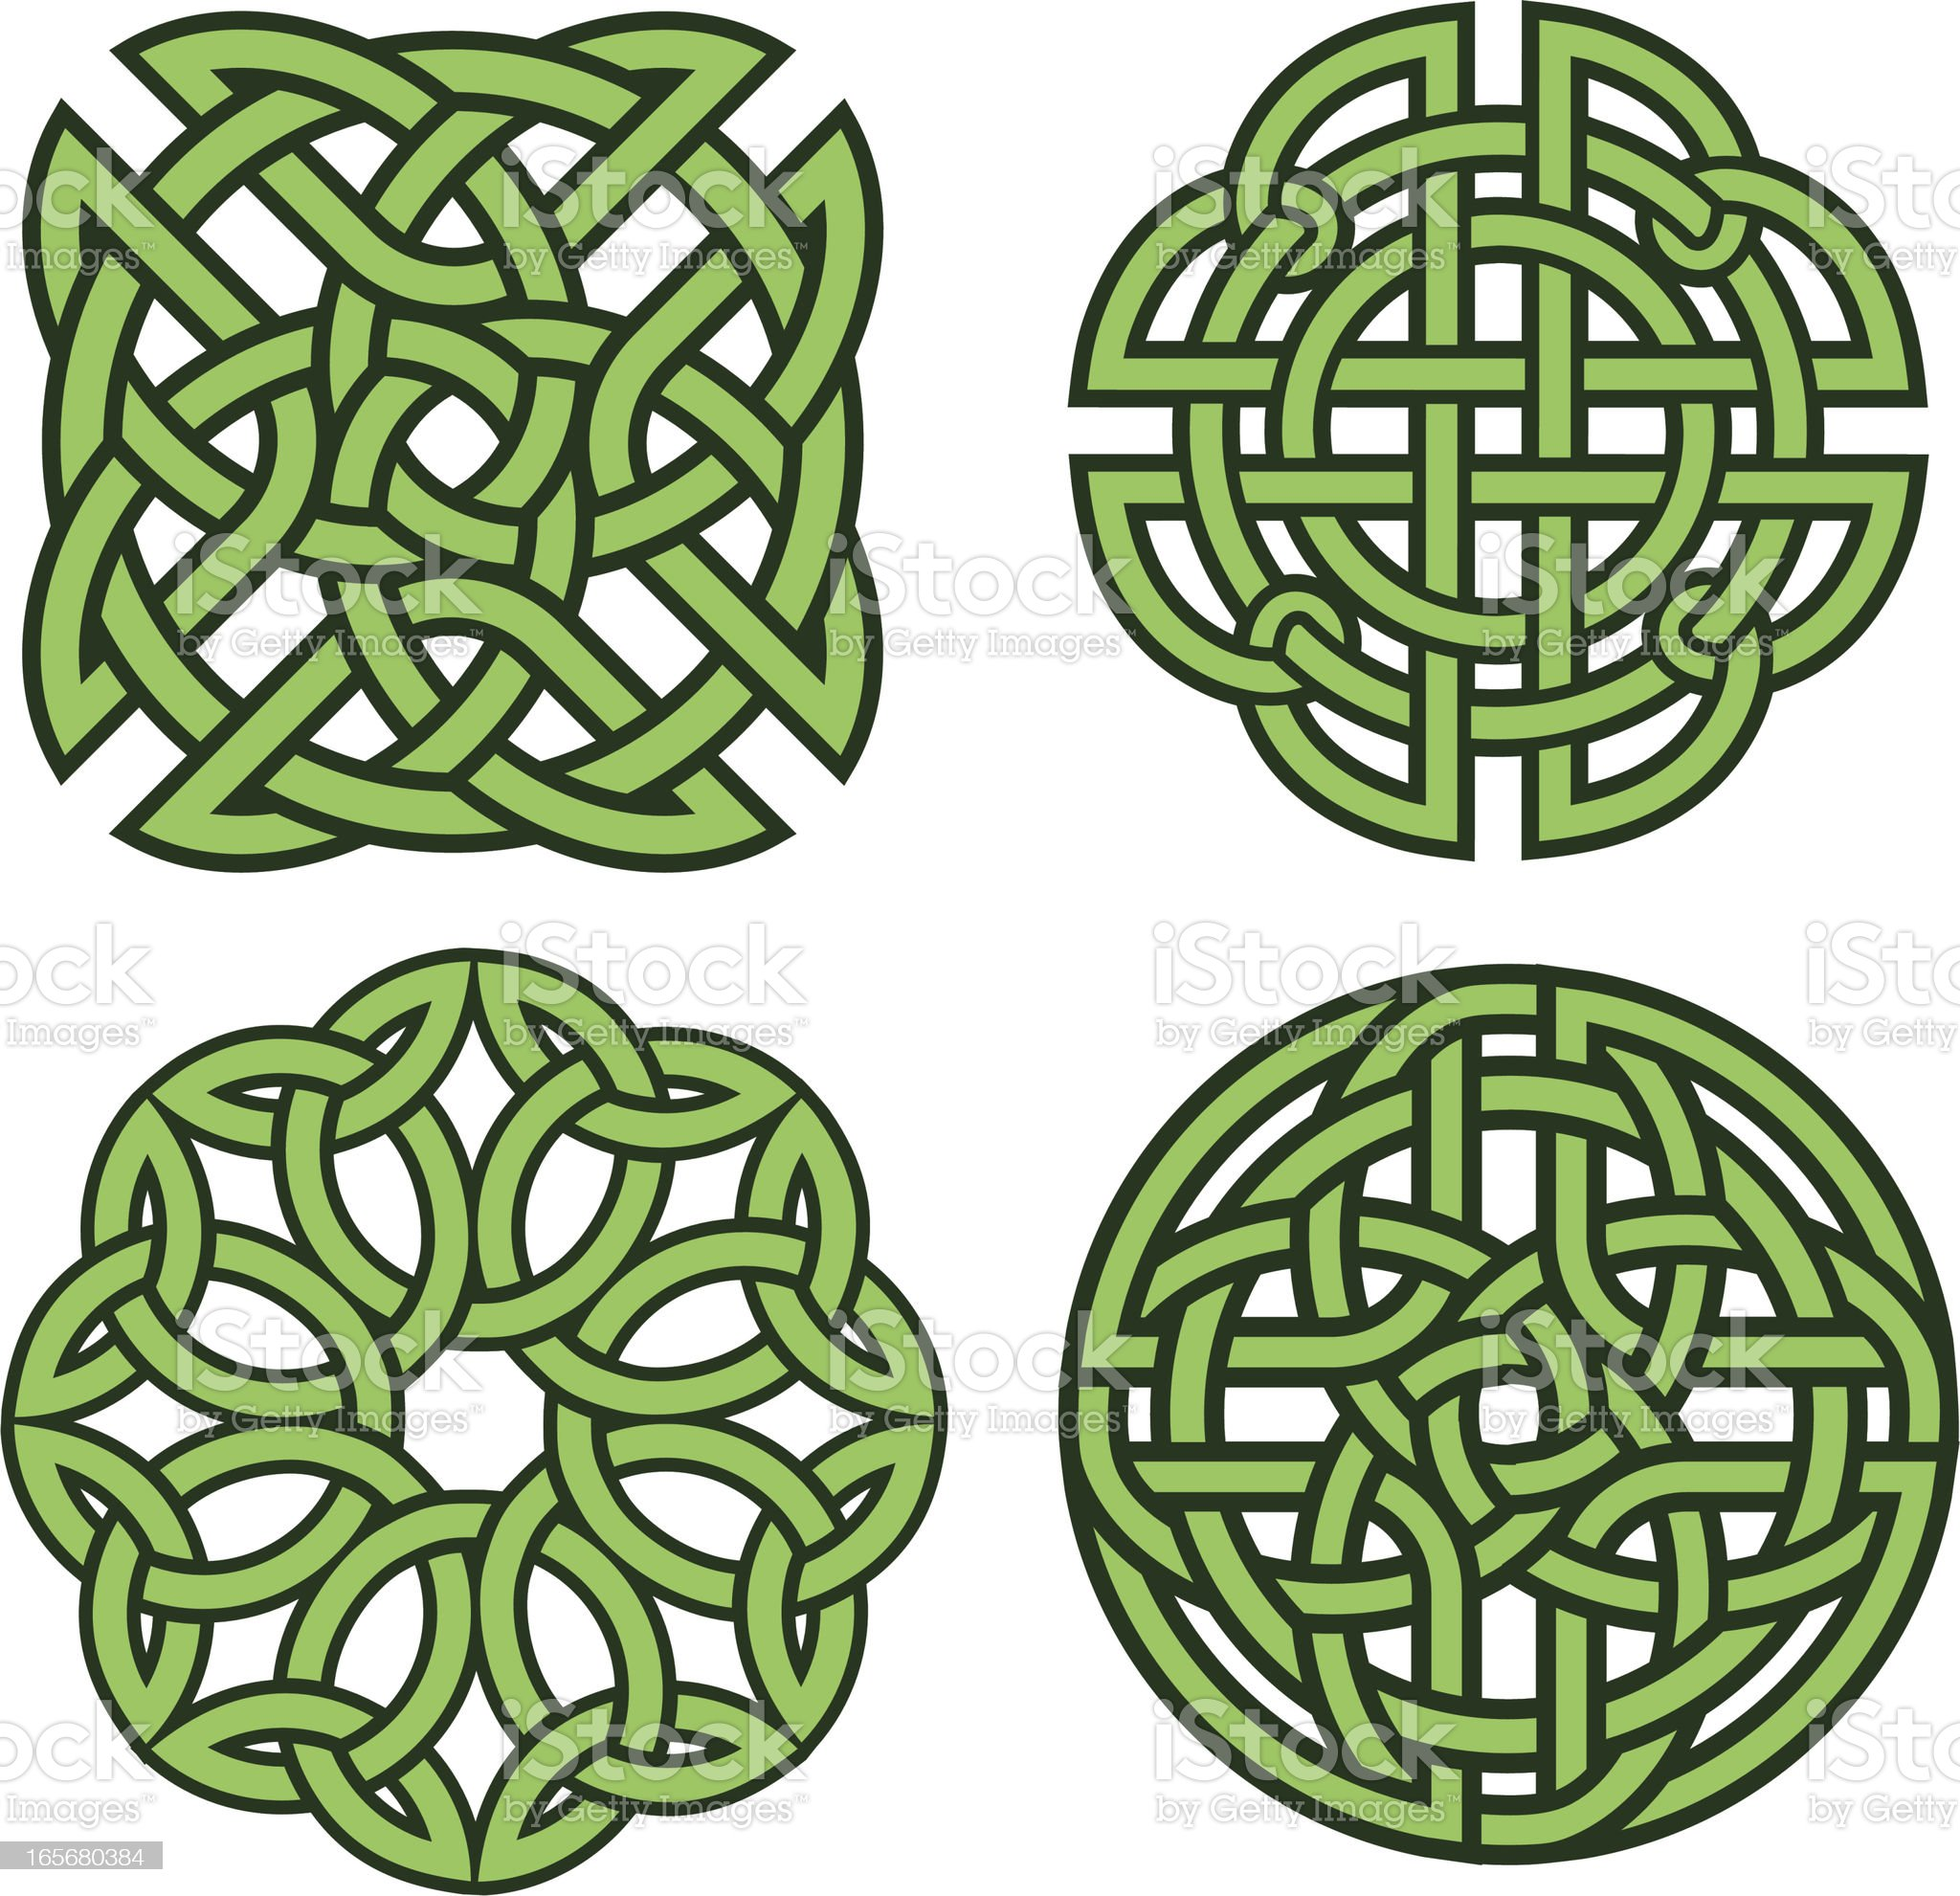 Set of four celtic knots royalty-free stock vector art